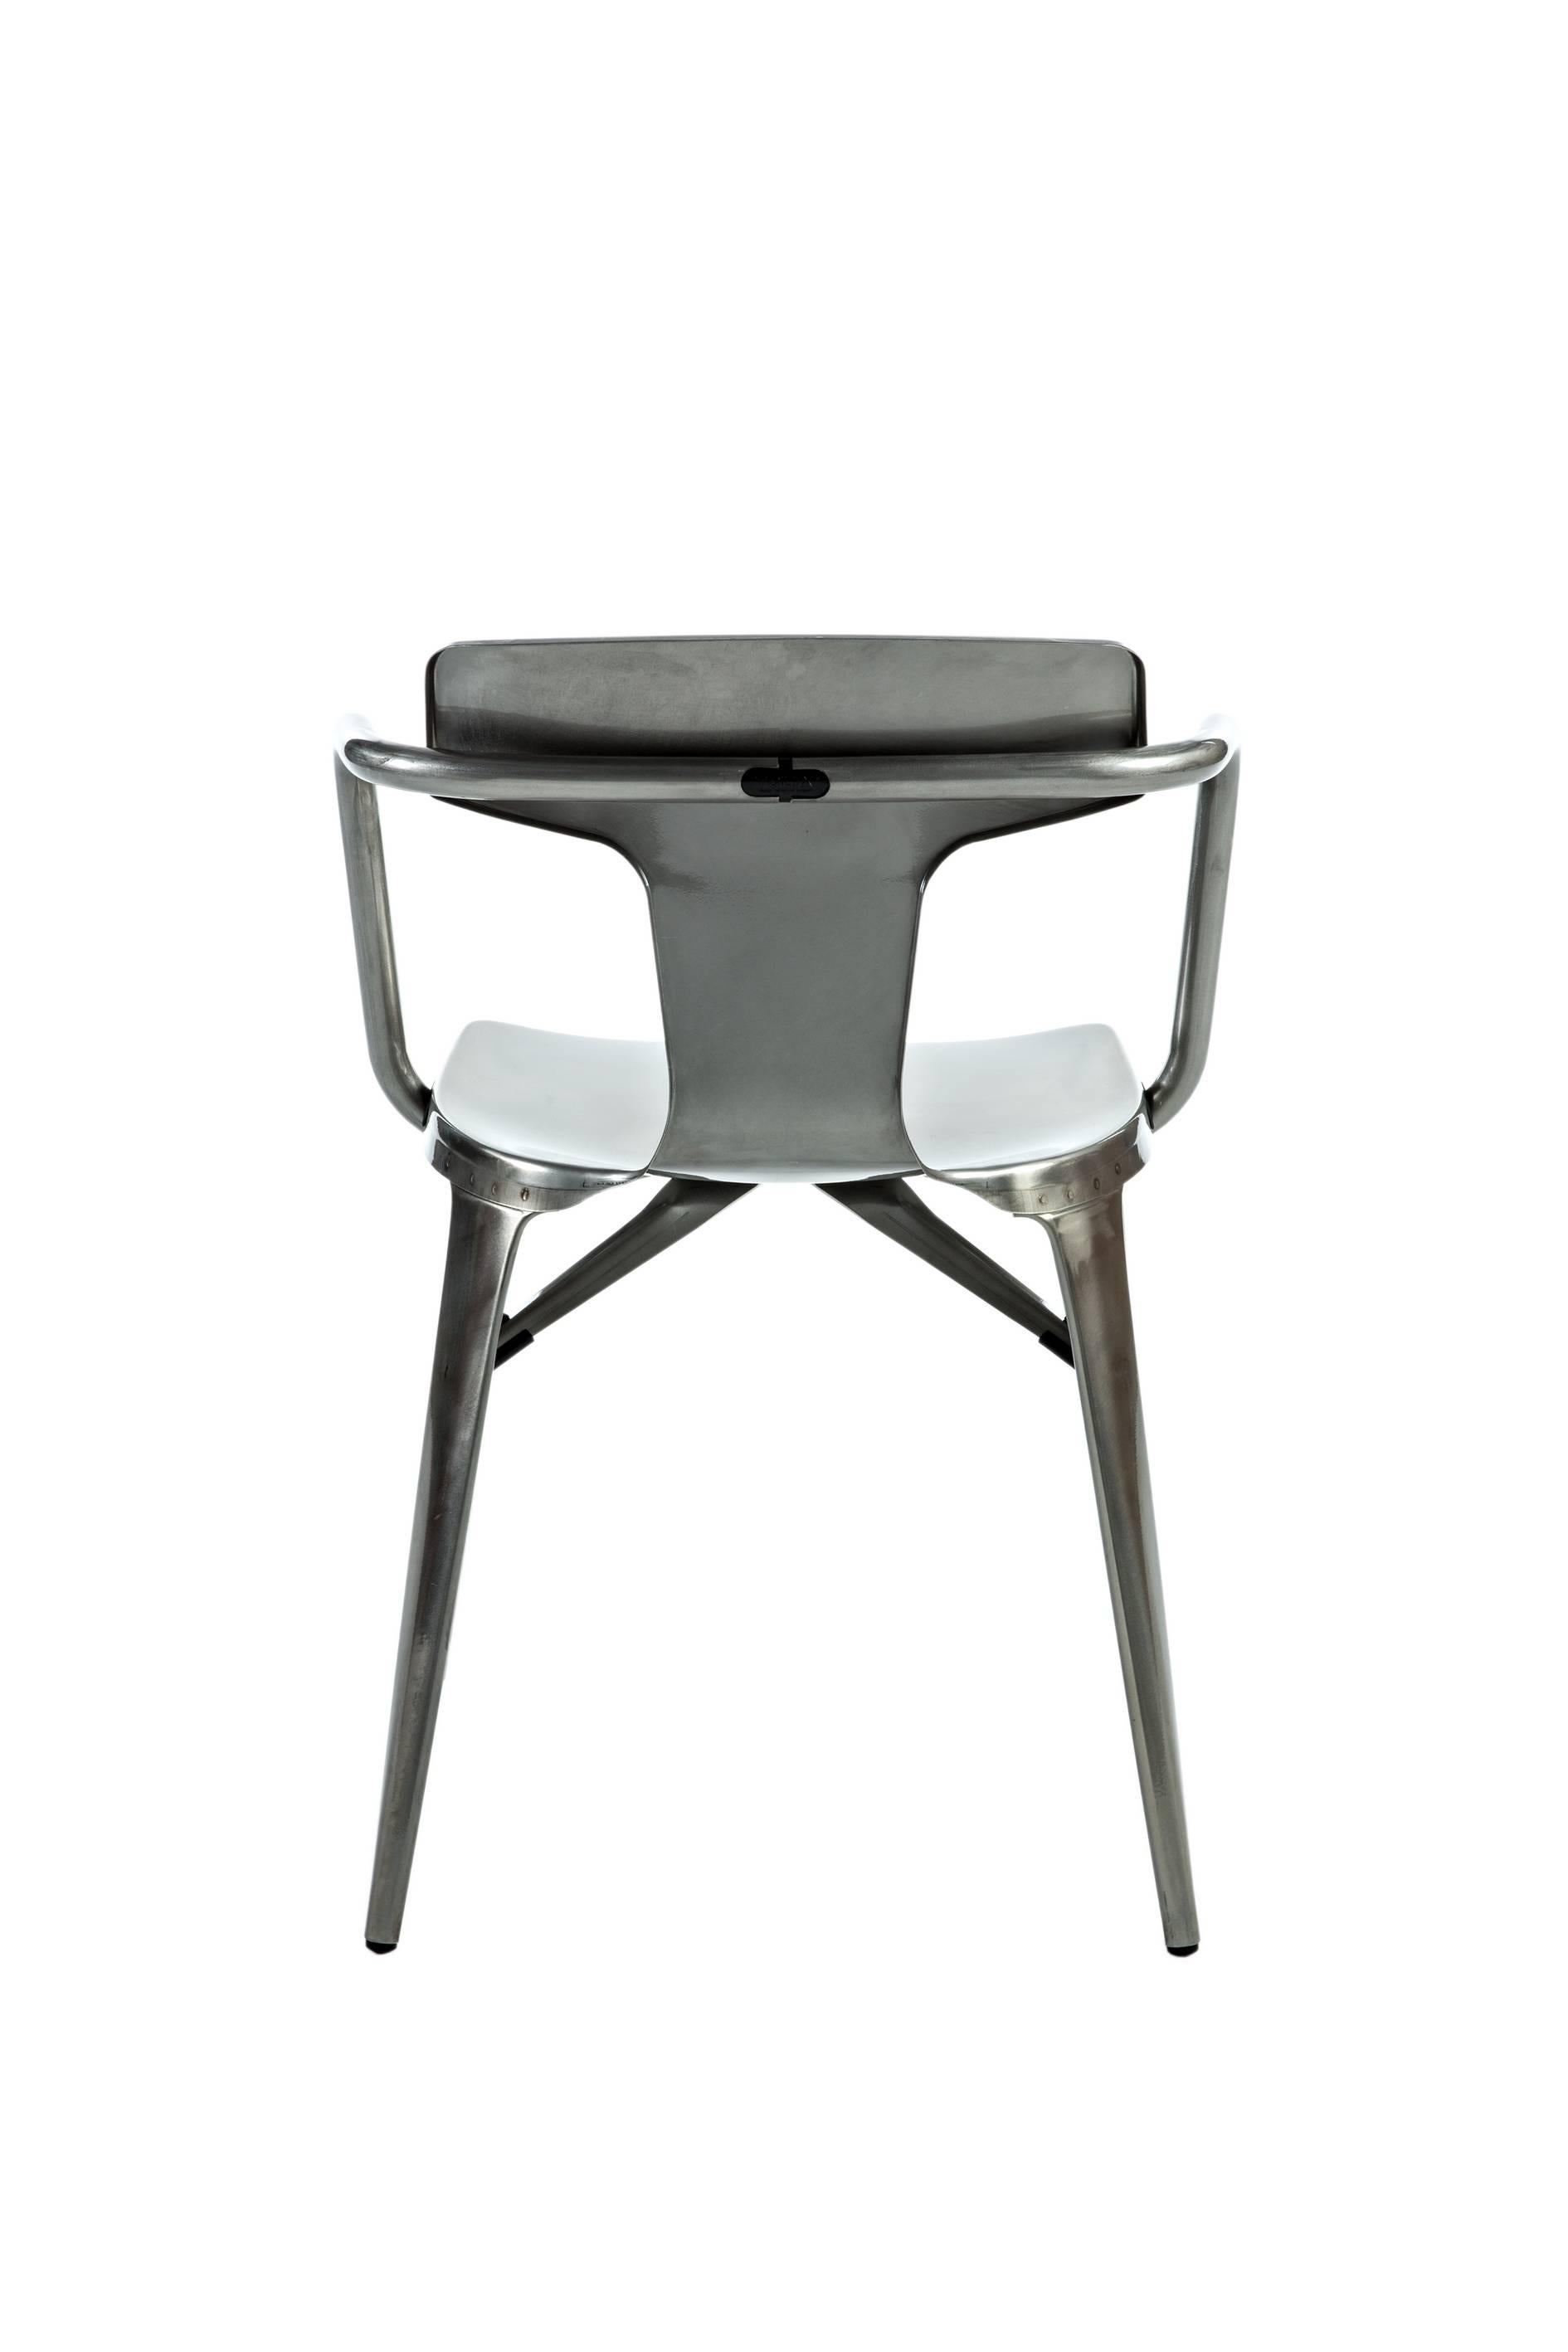 steel chair manufacturing process outdoor cushion t14 in with glossy lacquer by patrick norguet and tolix conceived the revolutionized range far from